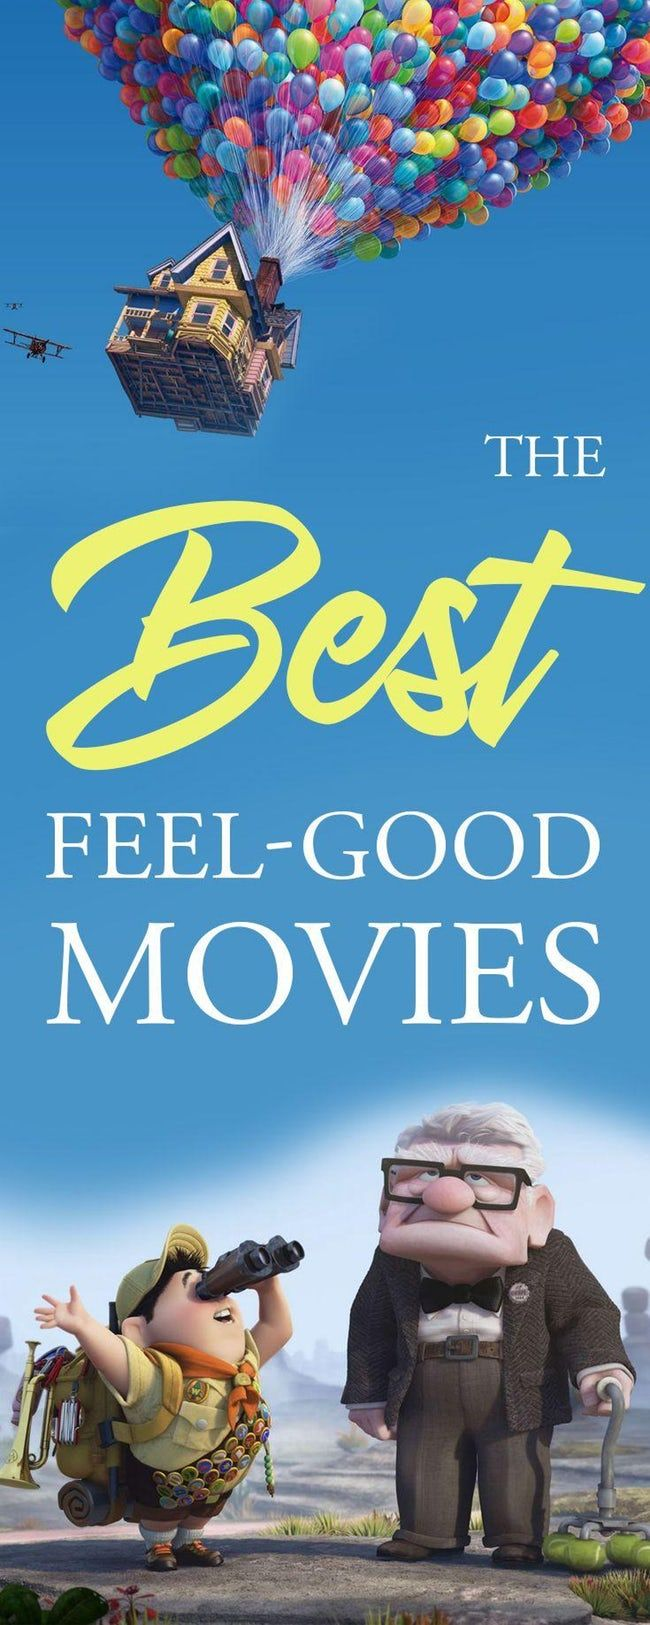 The Best Feel Good Movies Top Comedy Movies Movies To Watch Comedy Good Comedy Movies